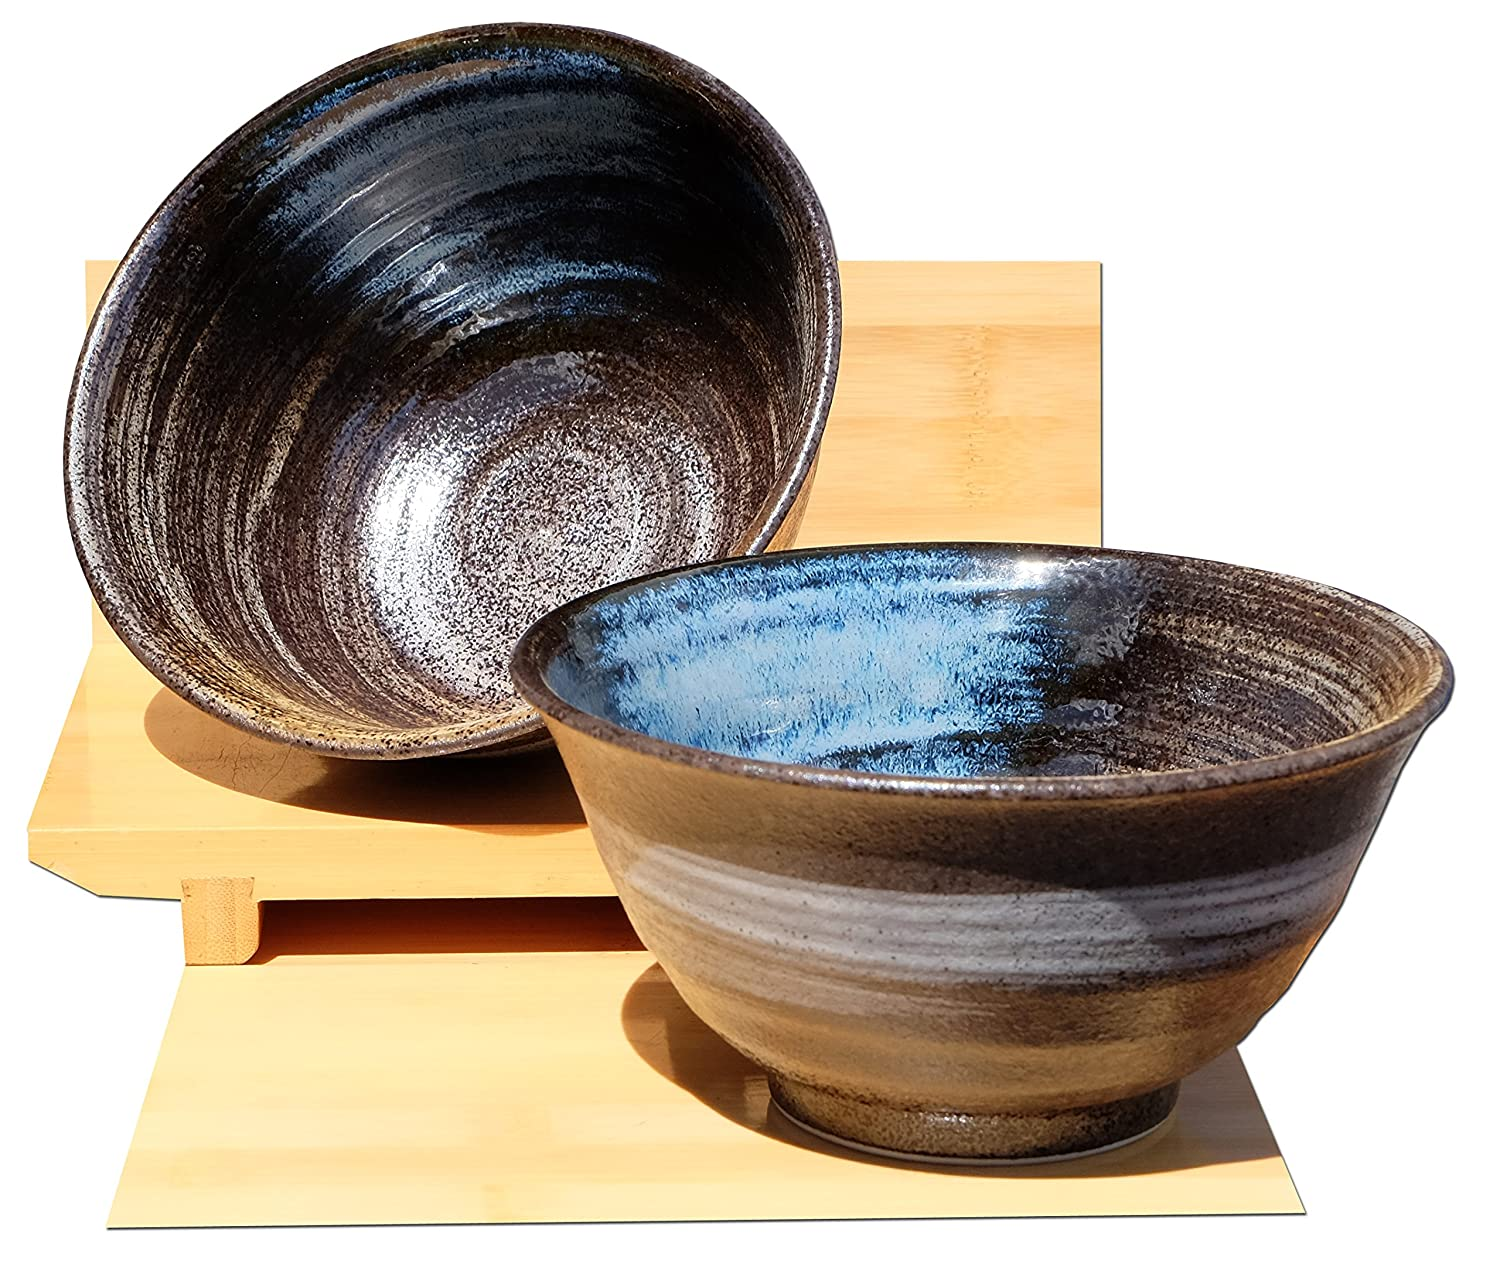 Coastal Waters ceramic bowls Japanese for two Gifts Of The Orient GOTO